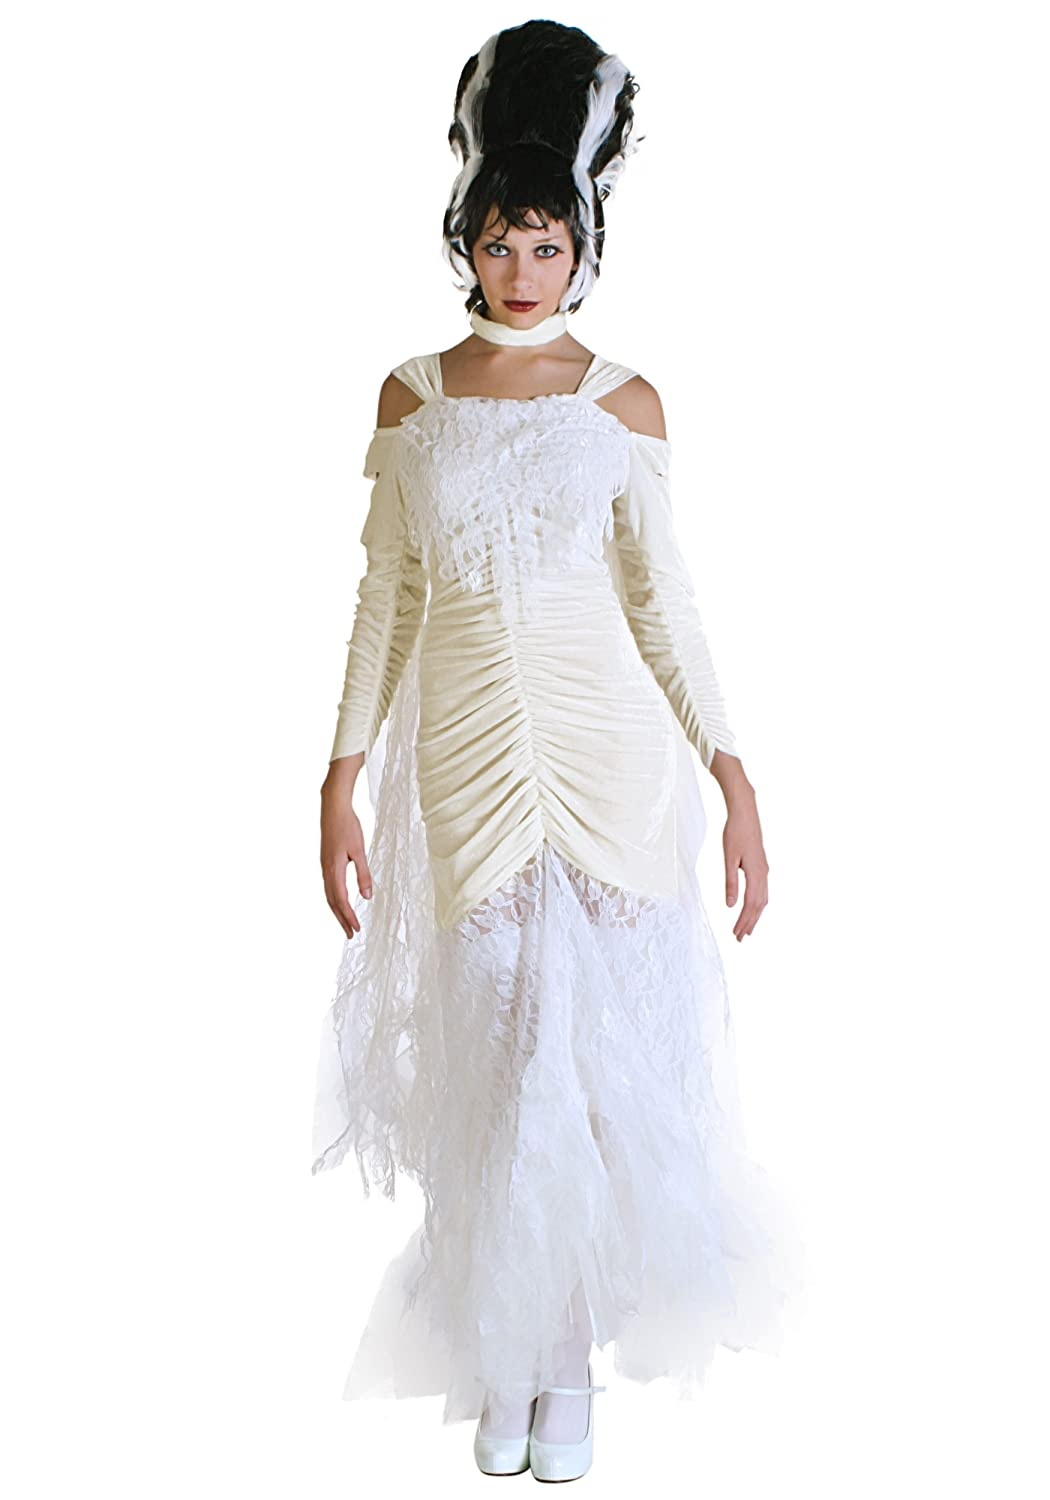 60s Costumes: Hippie, Go Go Dancer, Flower Child Bride of Frankenstein Costume $49.99 AT vintagedancer.com